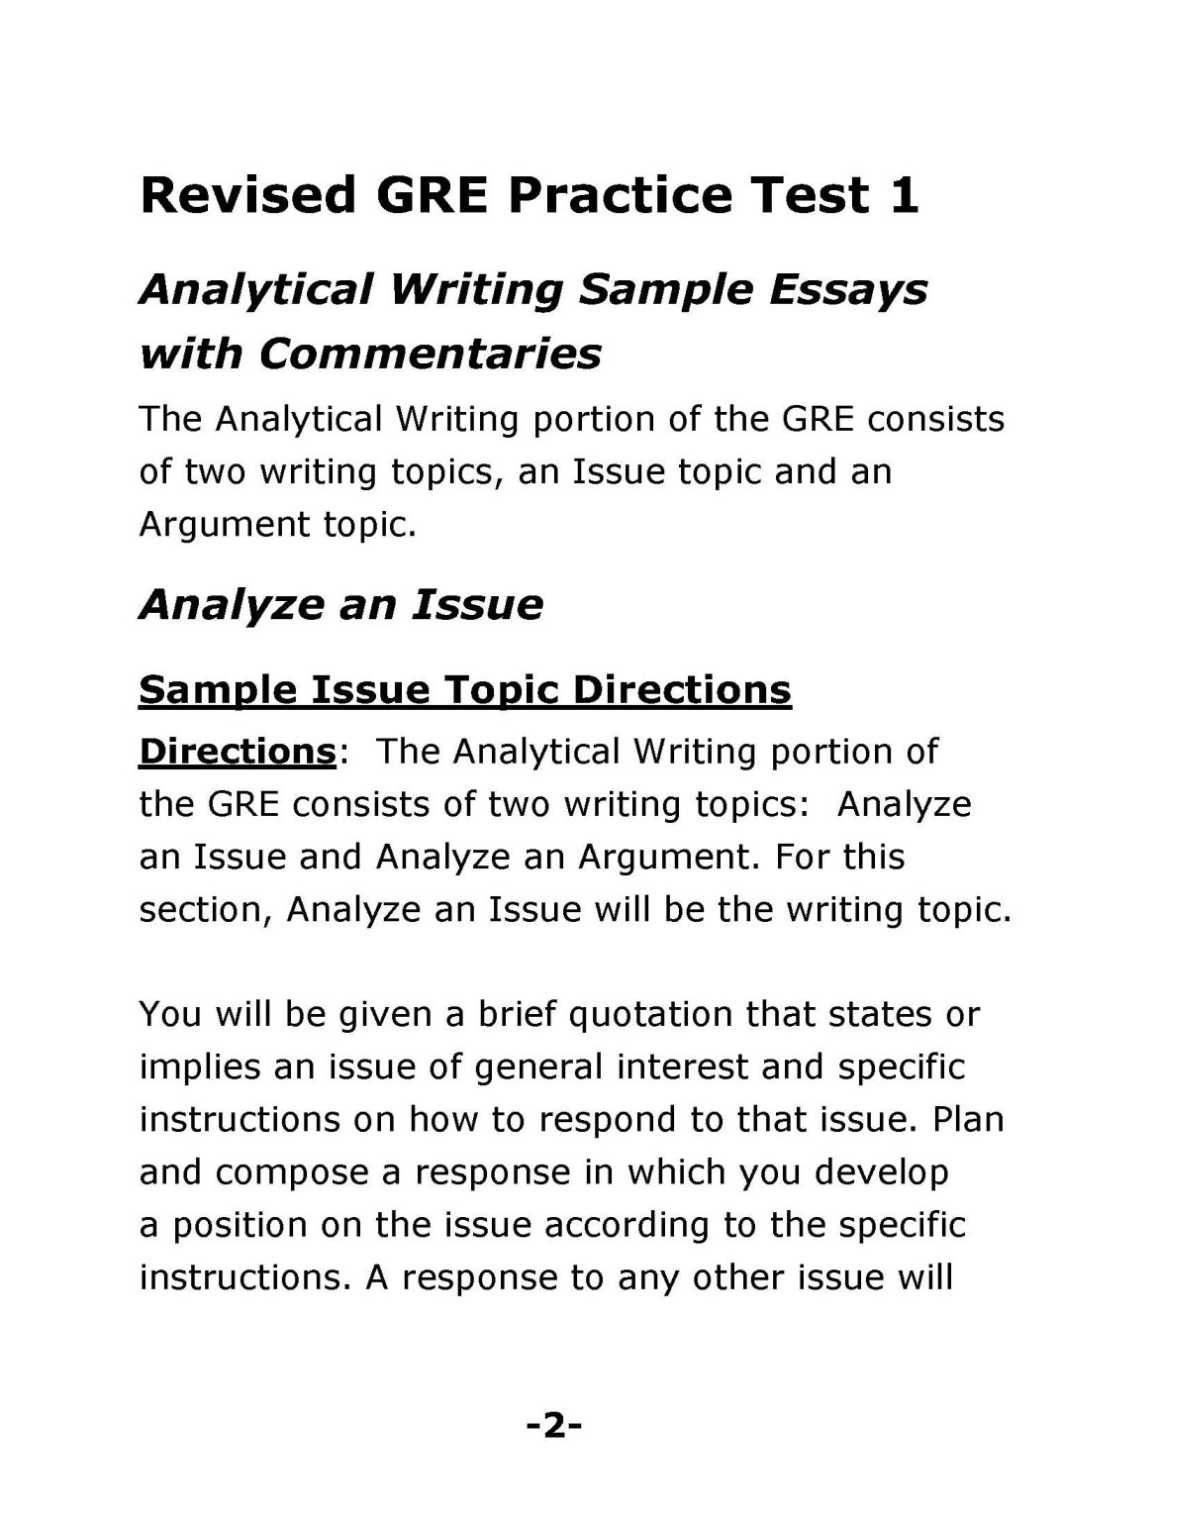 006 Essay Example Biodiversity Topics Special Wallpapers Gre Good Score Bio Diversity About On With Awa Examples Pdf Topic Issue To Use Ets Phenomenal Questions Full